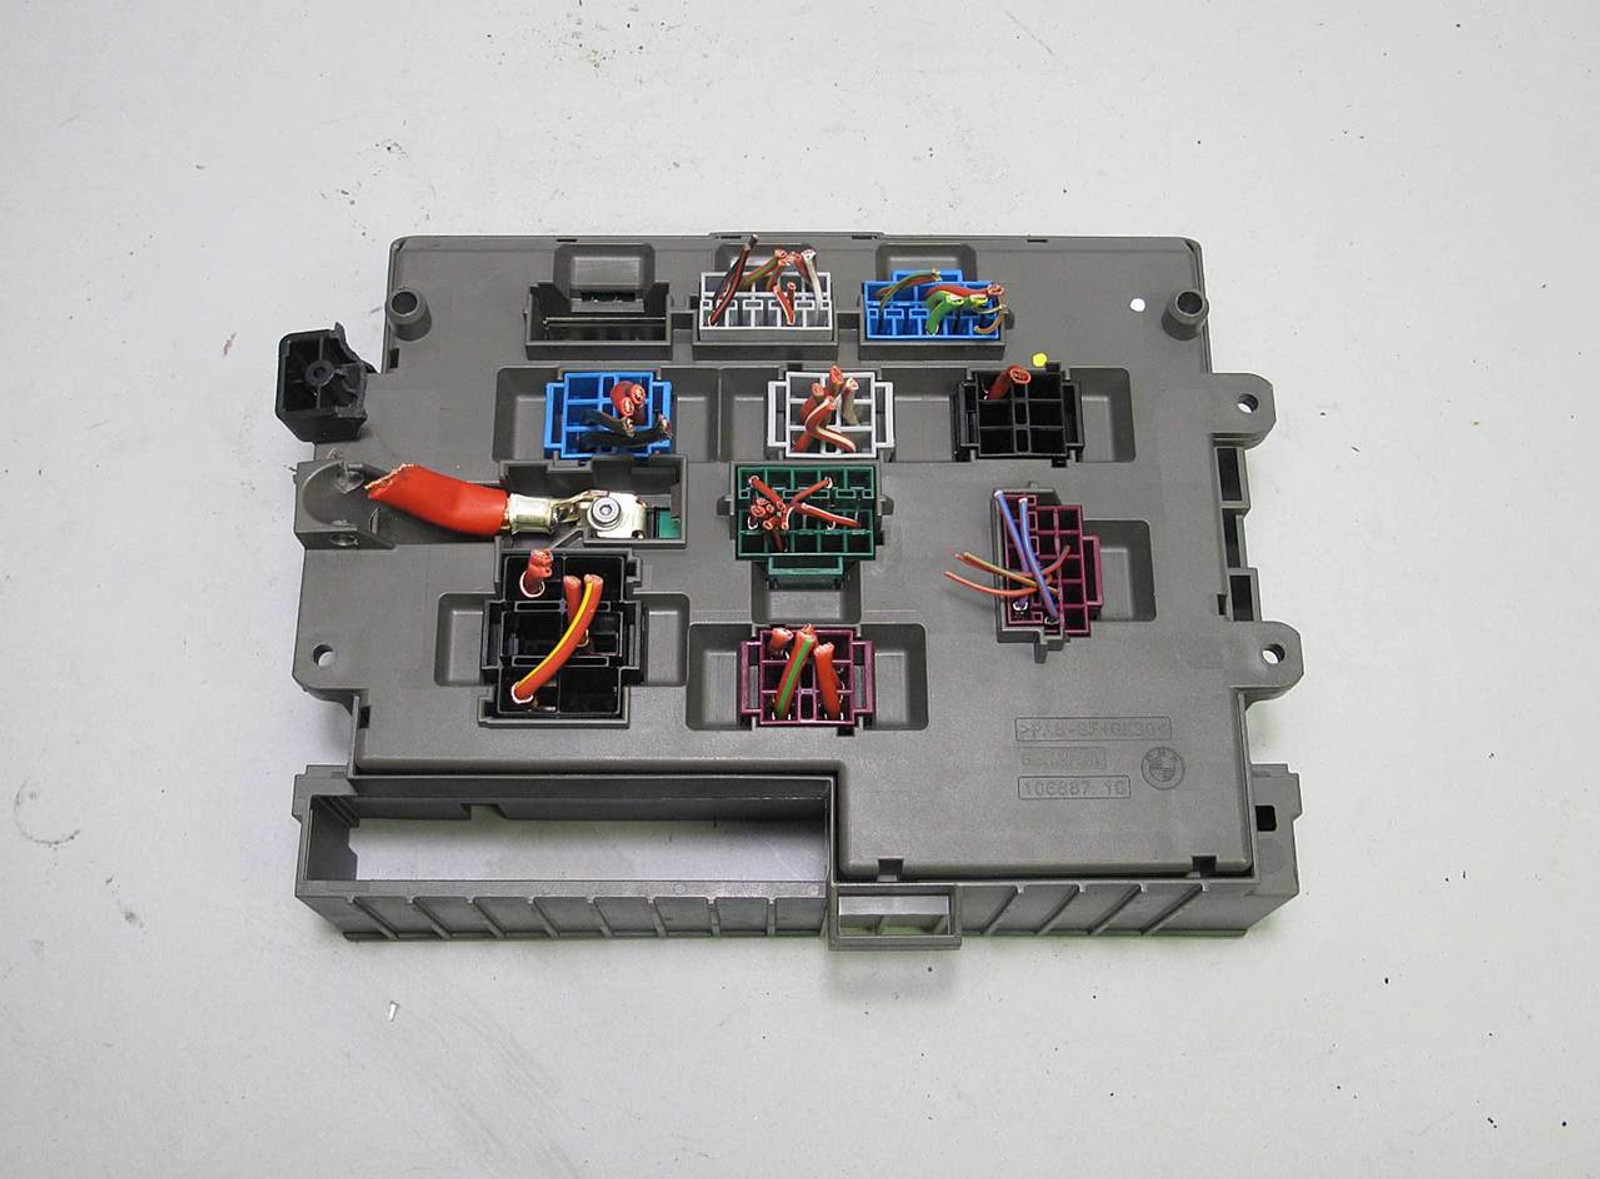 Fuse Box On Bmw E90 Explained Wiring Diagrams Oem 2005 3 Series Power Distribution 6906621 E92 E82 Front Interior Glove 2008 2013 320i